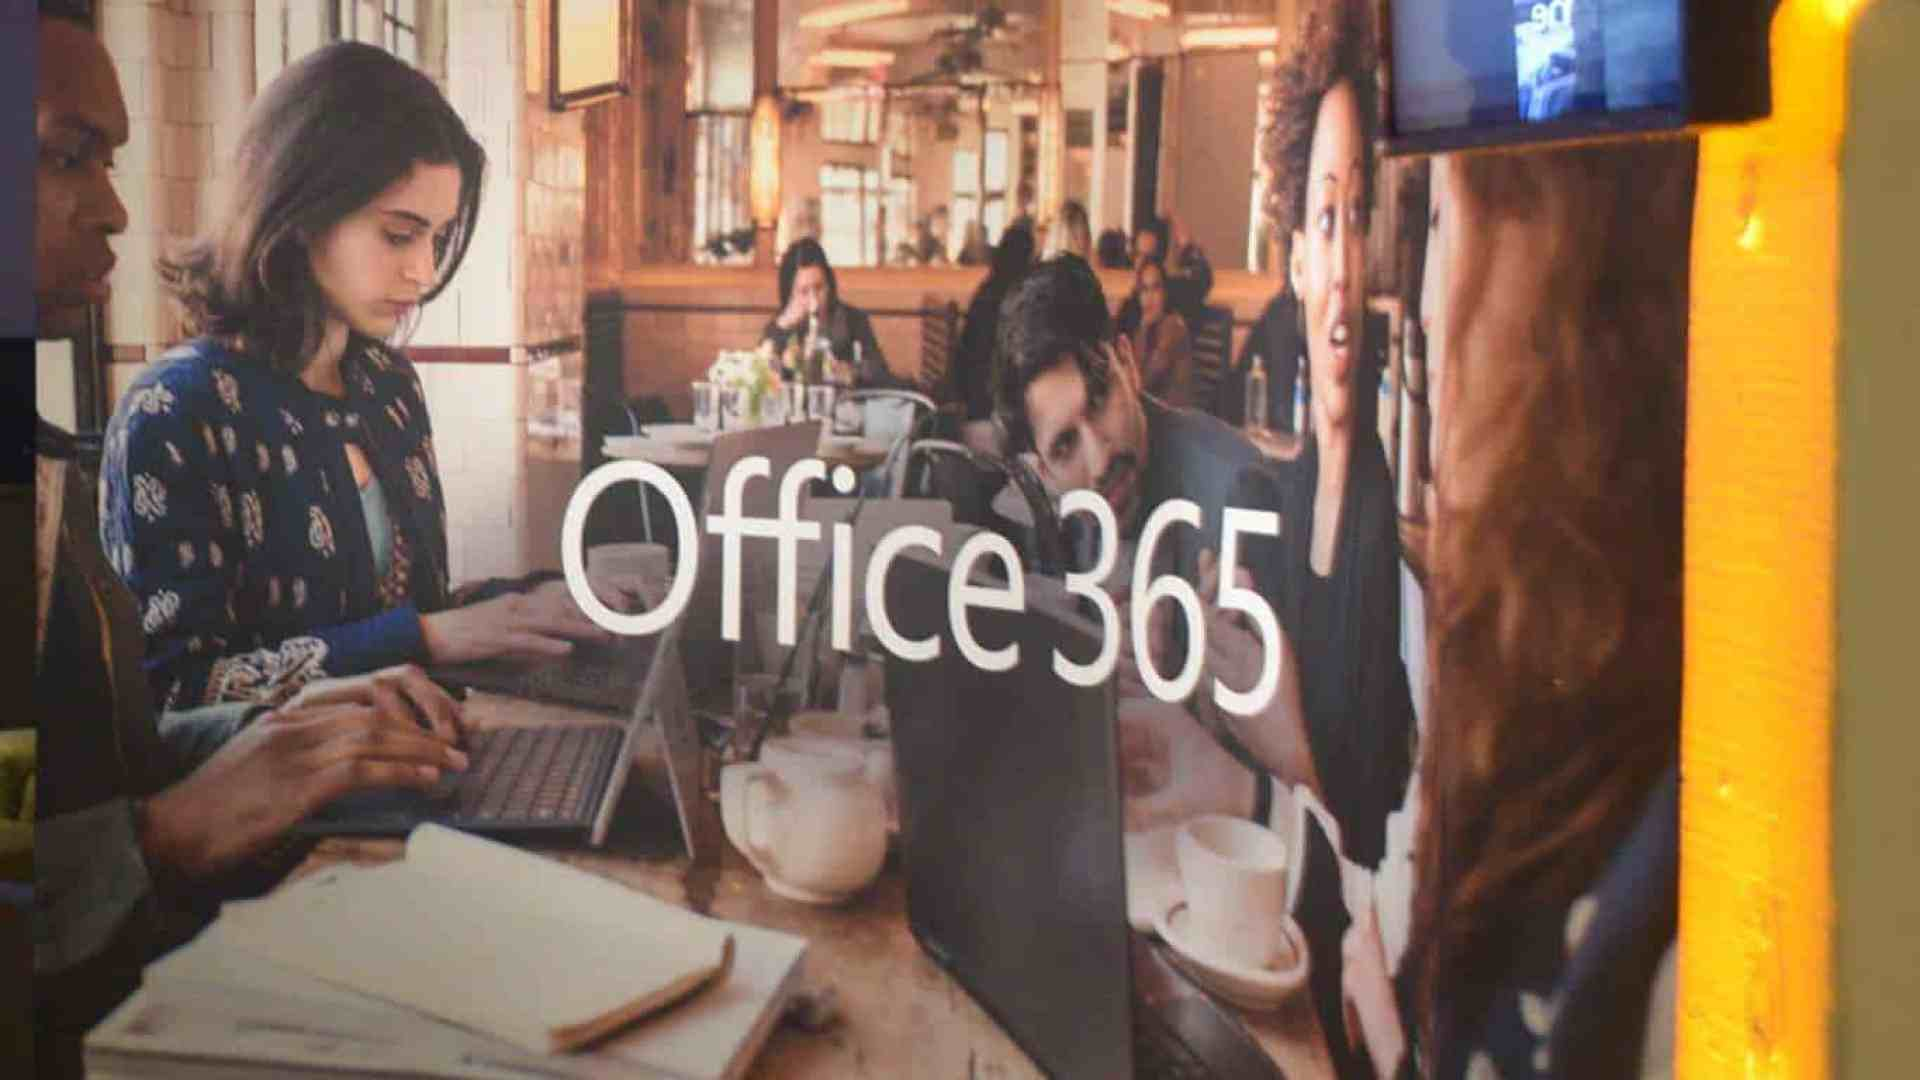 """Image of reflection on glass showing people working with Microsoft devices with """"Office 365"""" text"""